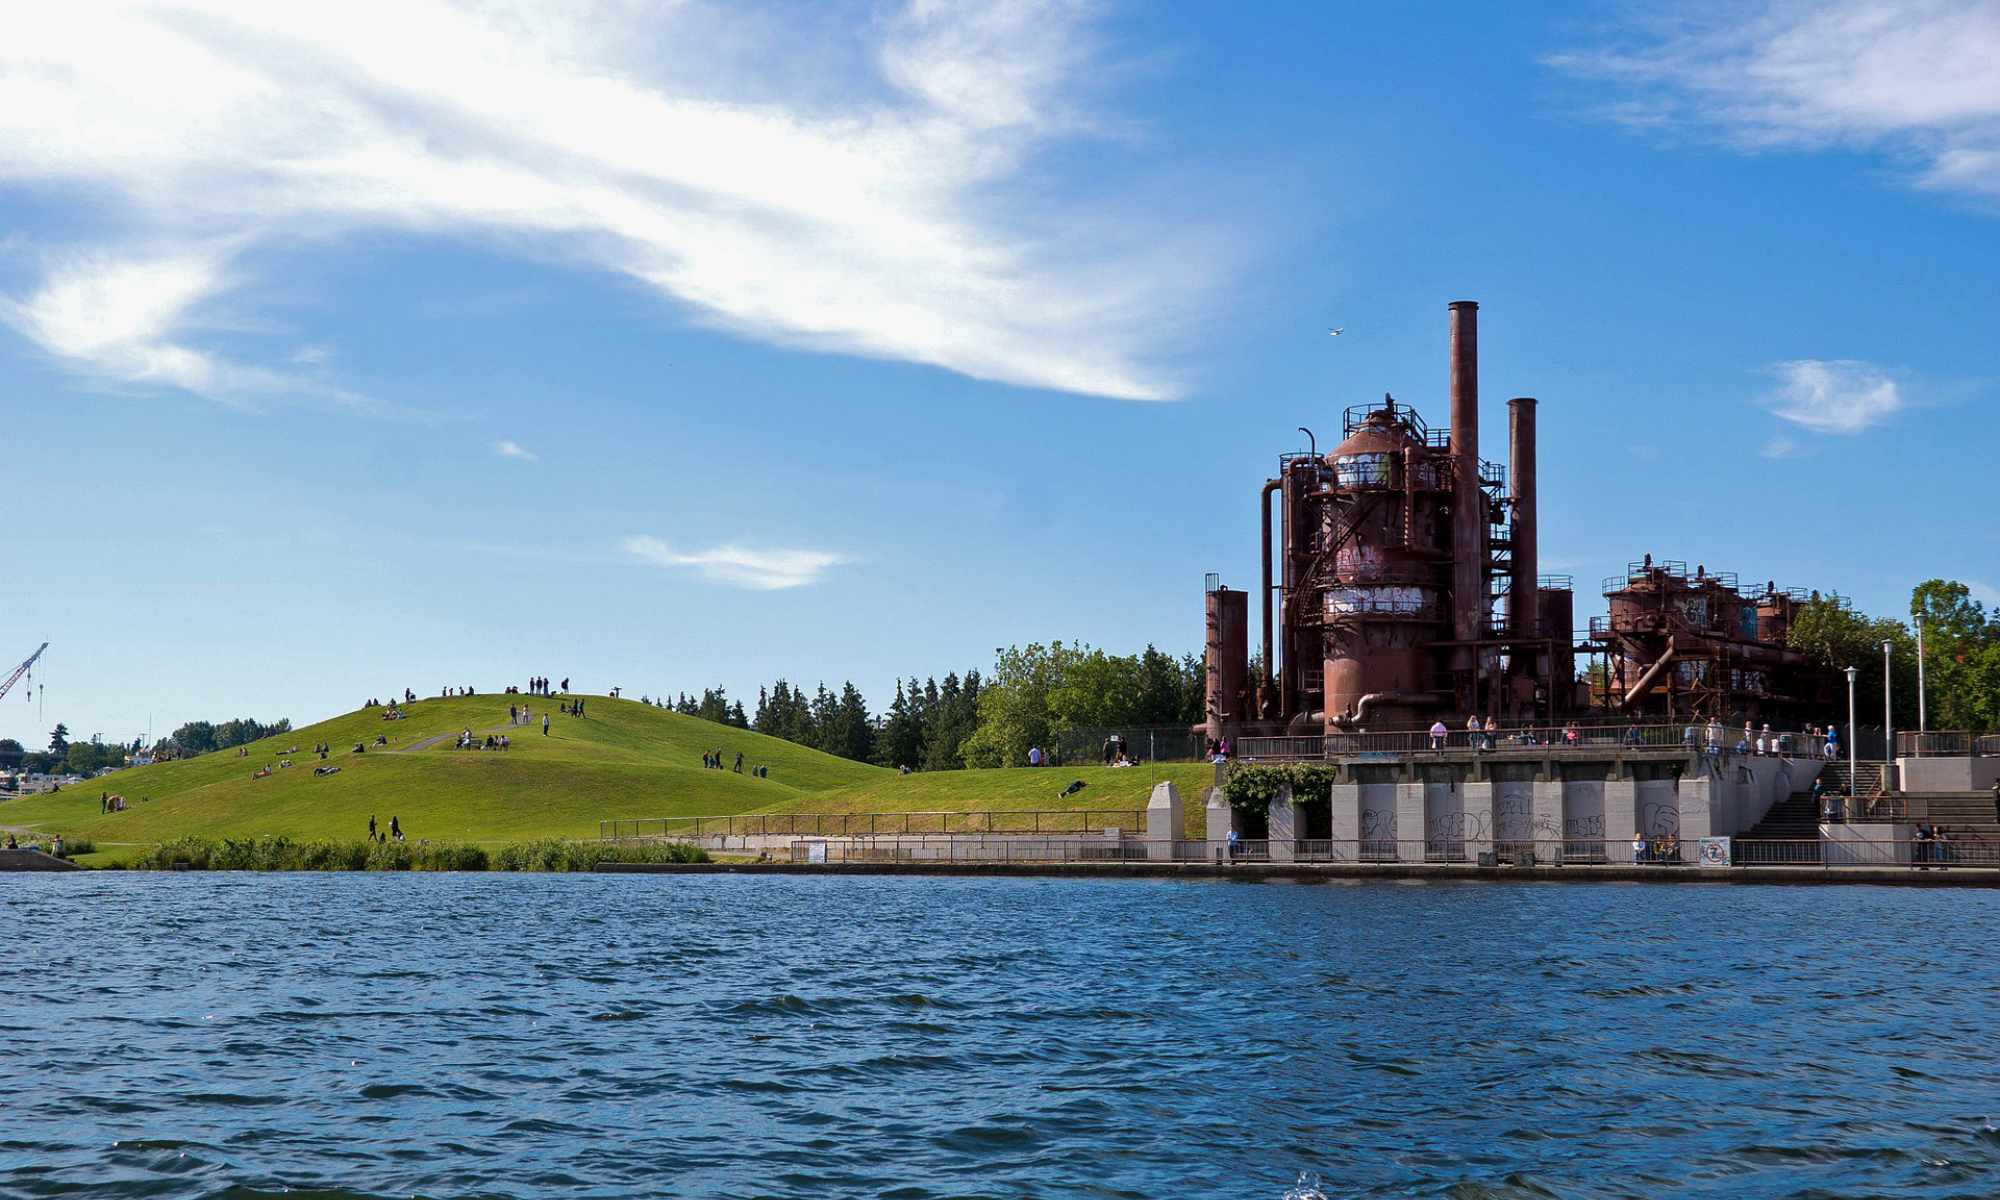 Gas Works Park in the Wallingford Neighborhood of Seattle